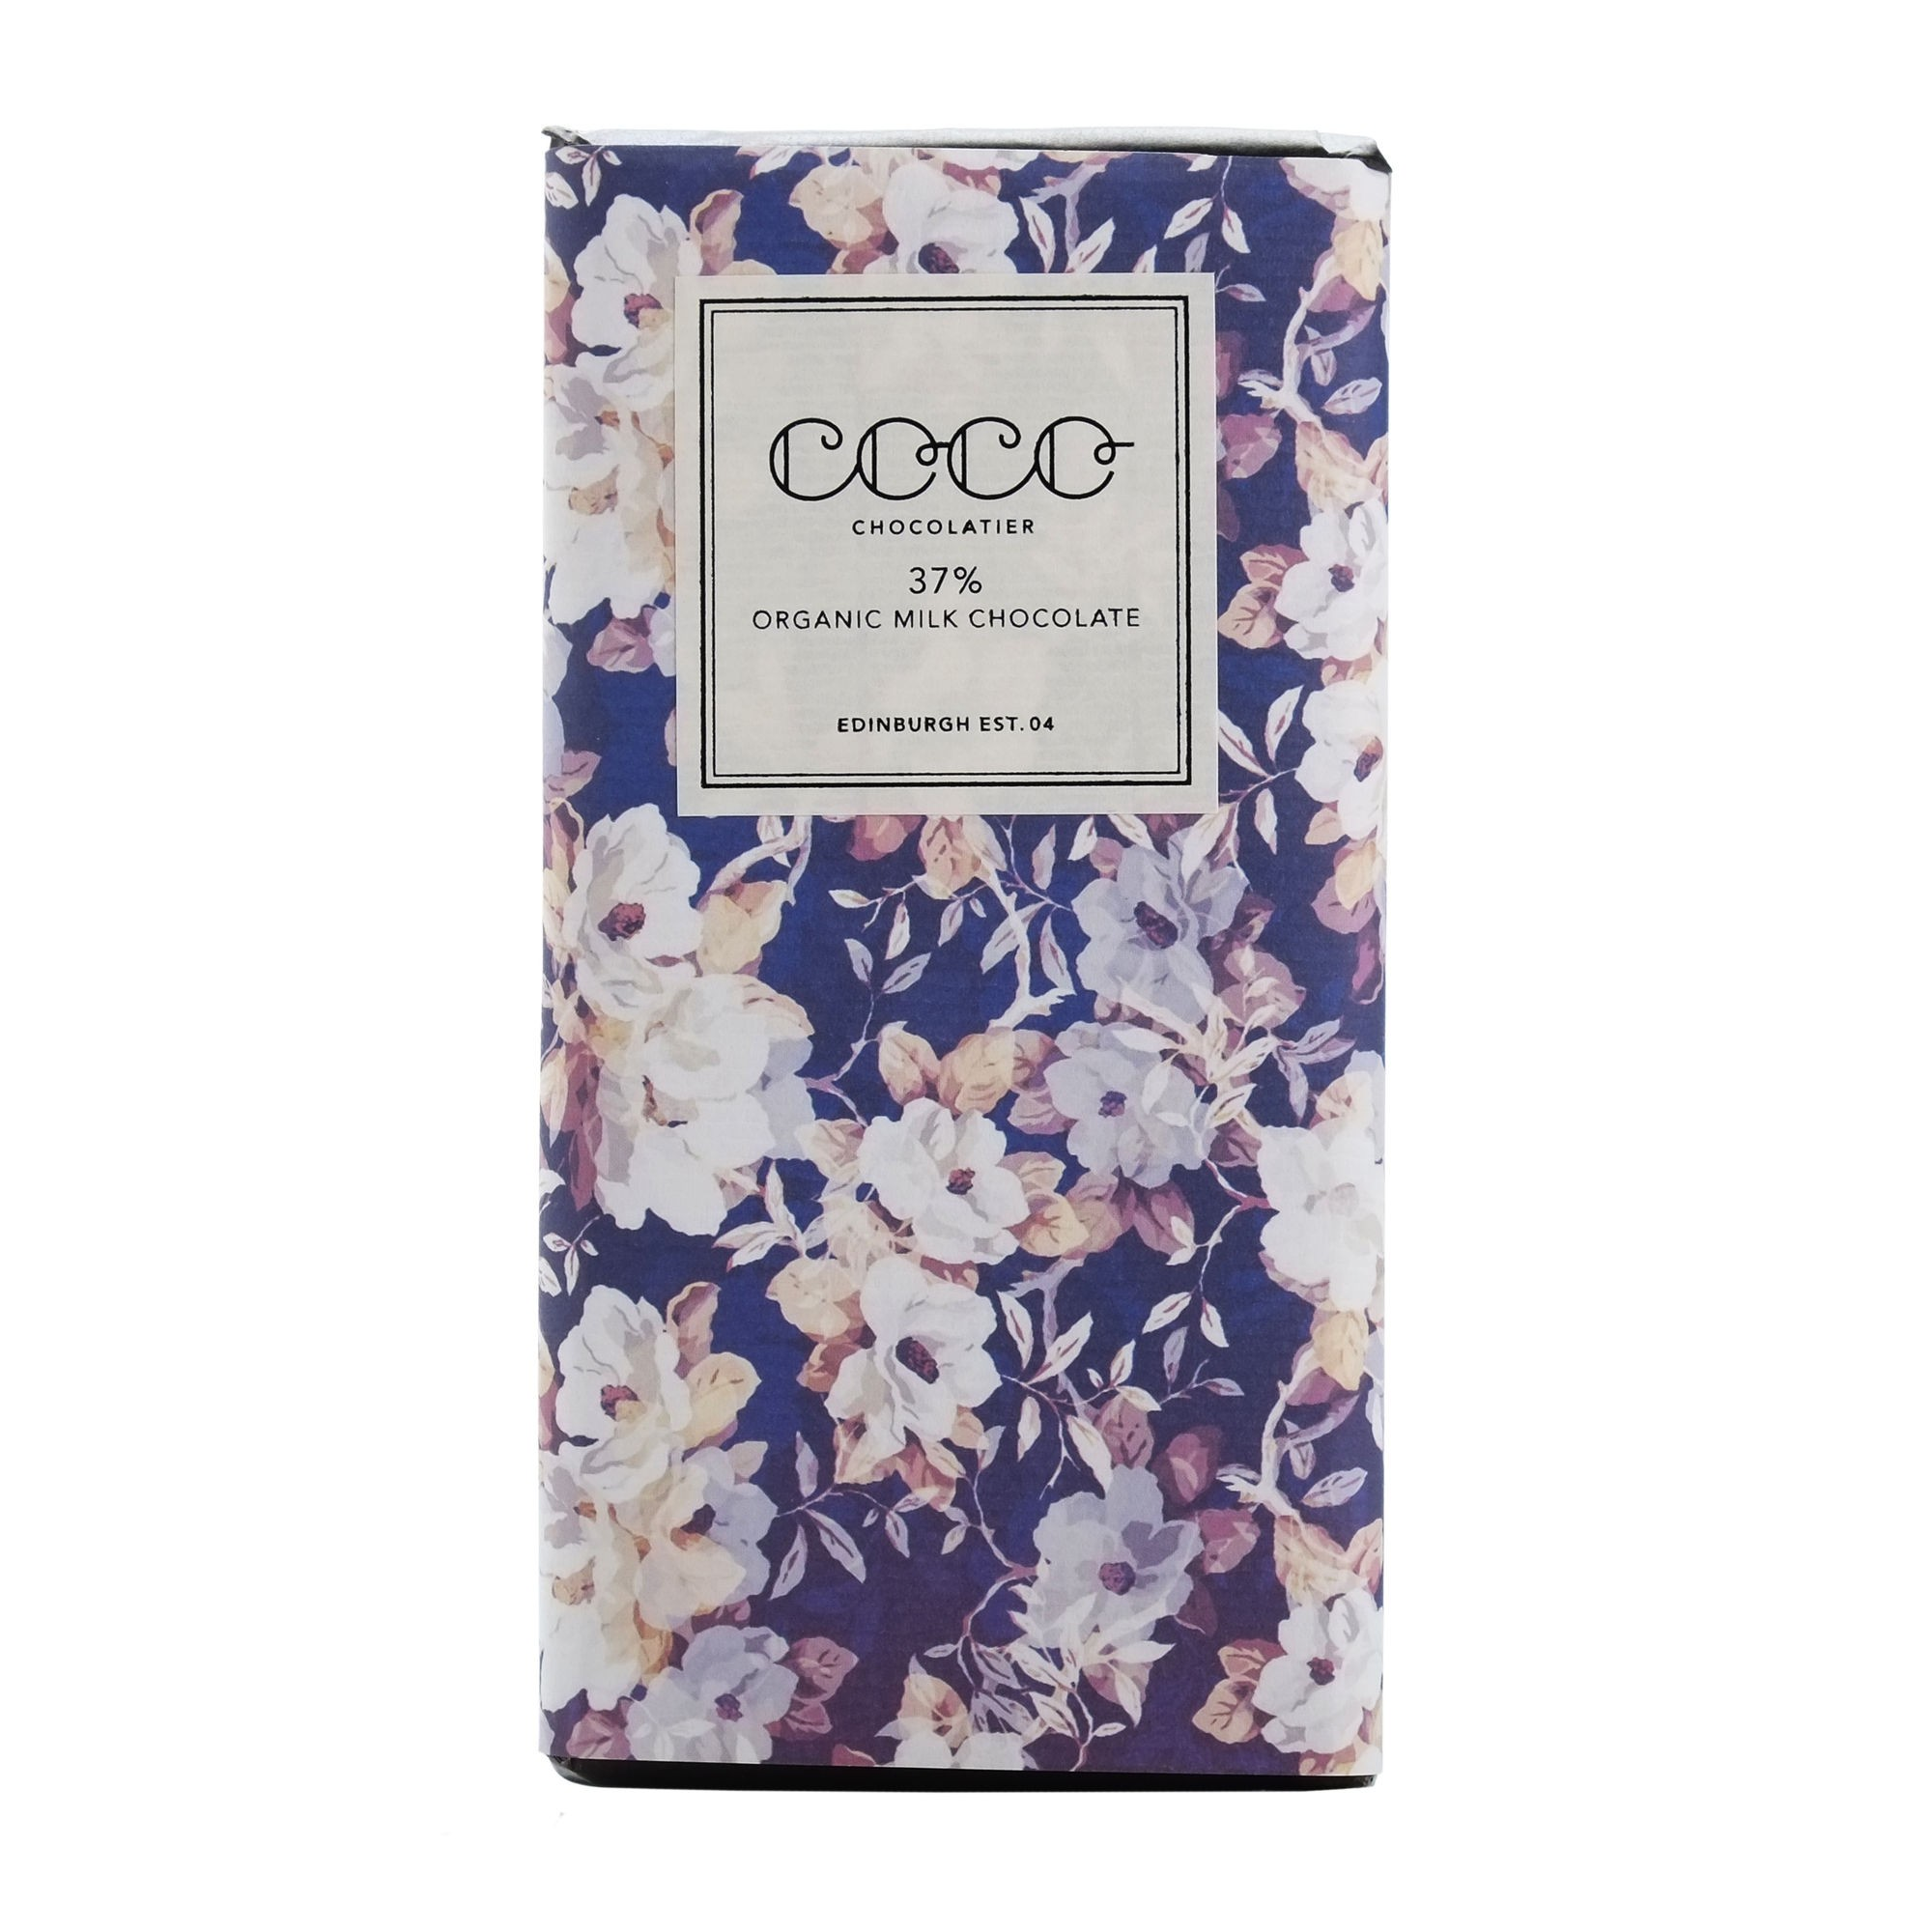 COCO CHOCOLATIER ORGANIC MILK CHOCOLATE BAR